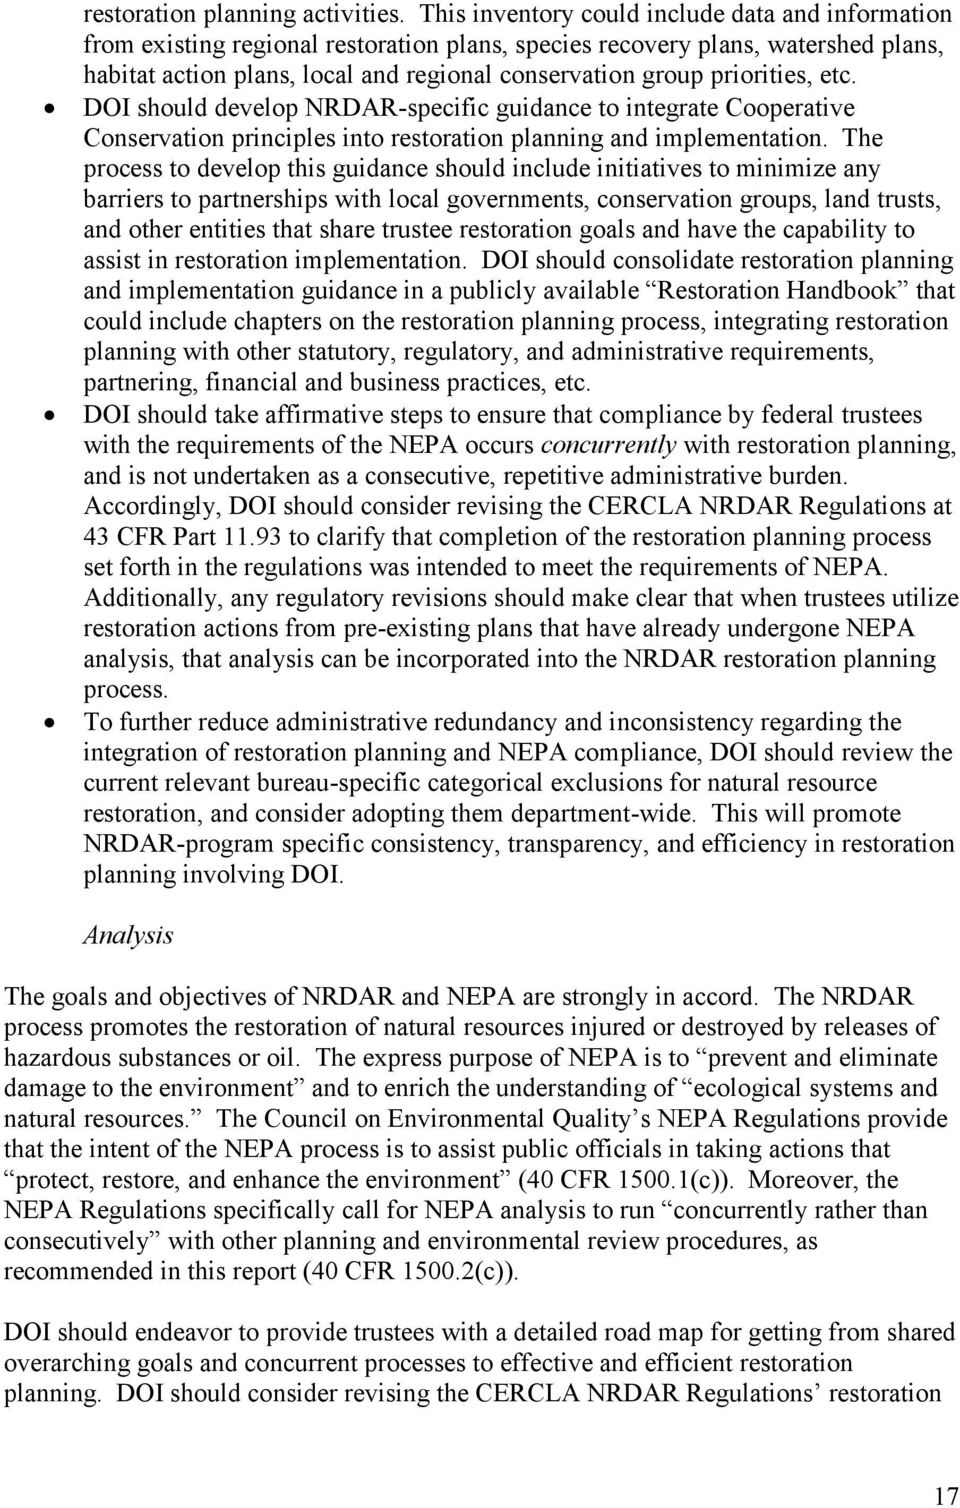 priorities, etc. DOI should develop NRDAR-specific guidance to integrate Cooperative Conservation principles into restoration planning and implementation.